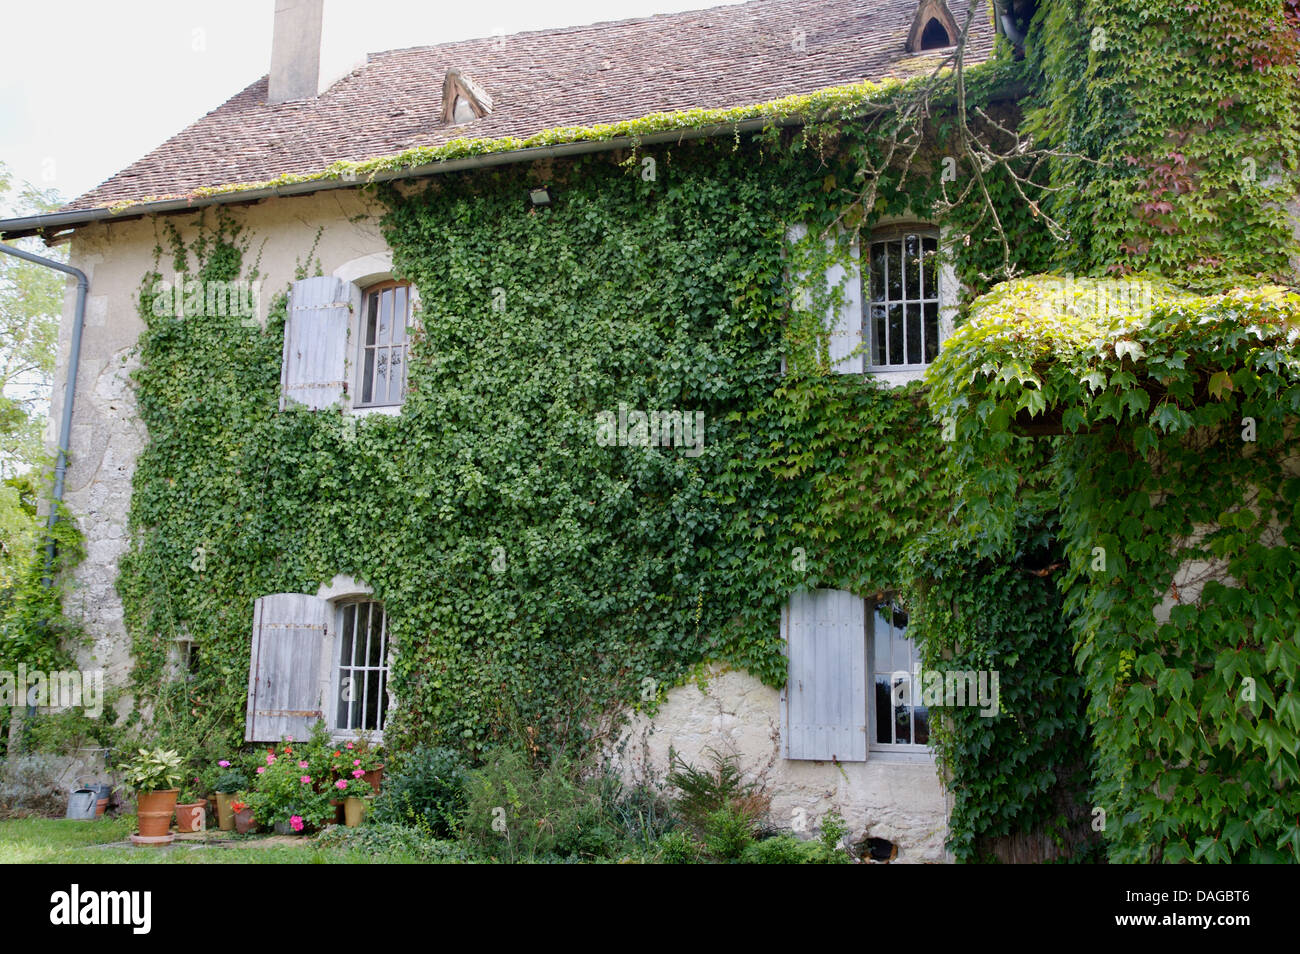 Old French Country House With Ivy Clad Walls And Windows